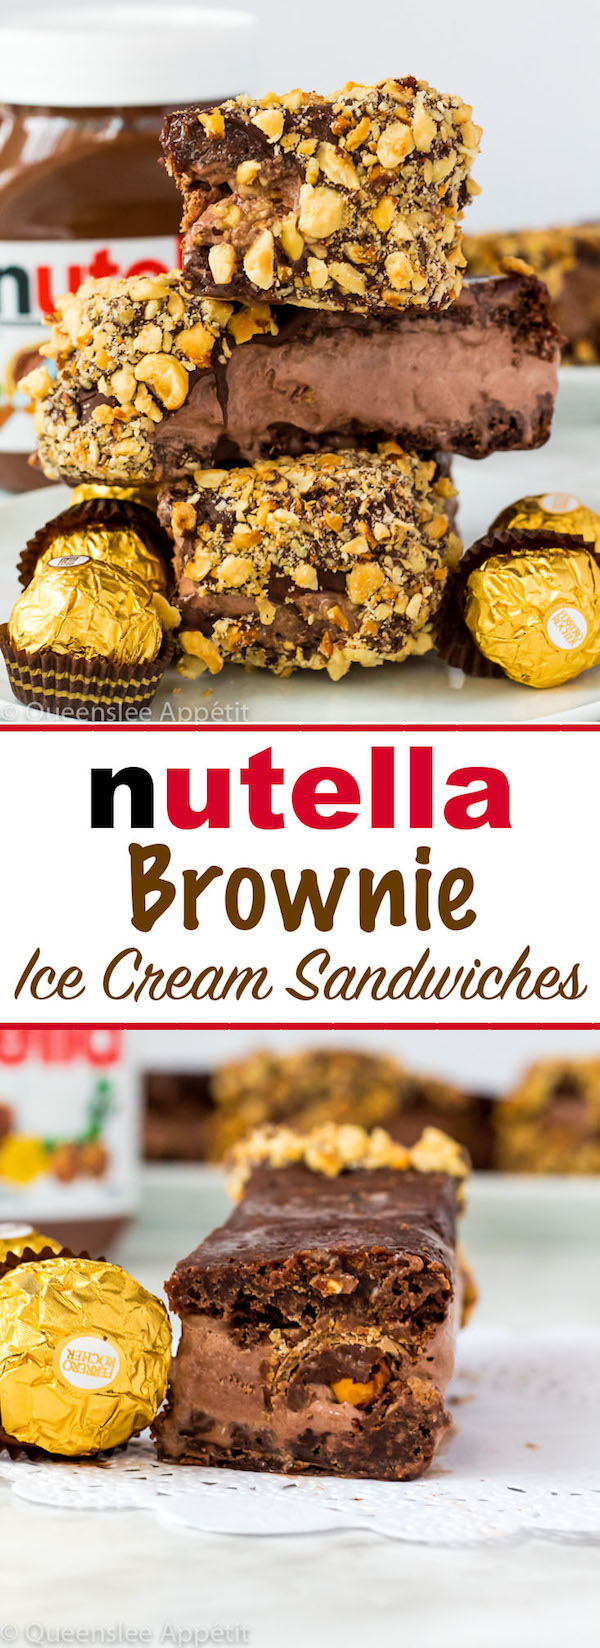 These Nutella Brownie Ice Cream Sandwiches feature Ferrero Rocher stuffed chocolate ice cream sandwiched between two fudgy Nutella brownies. These lovelies are taken to the next level with a chocolate/hazelnut coating! A fun treat for the summertime!